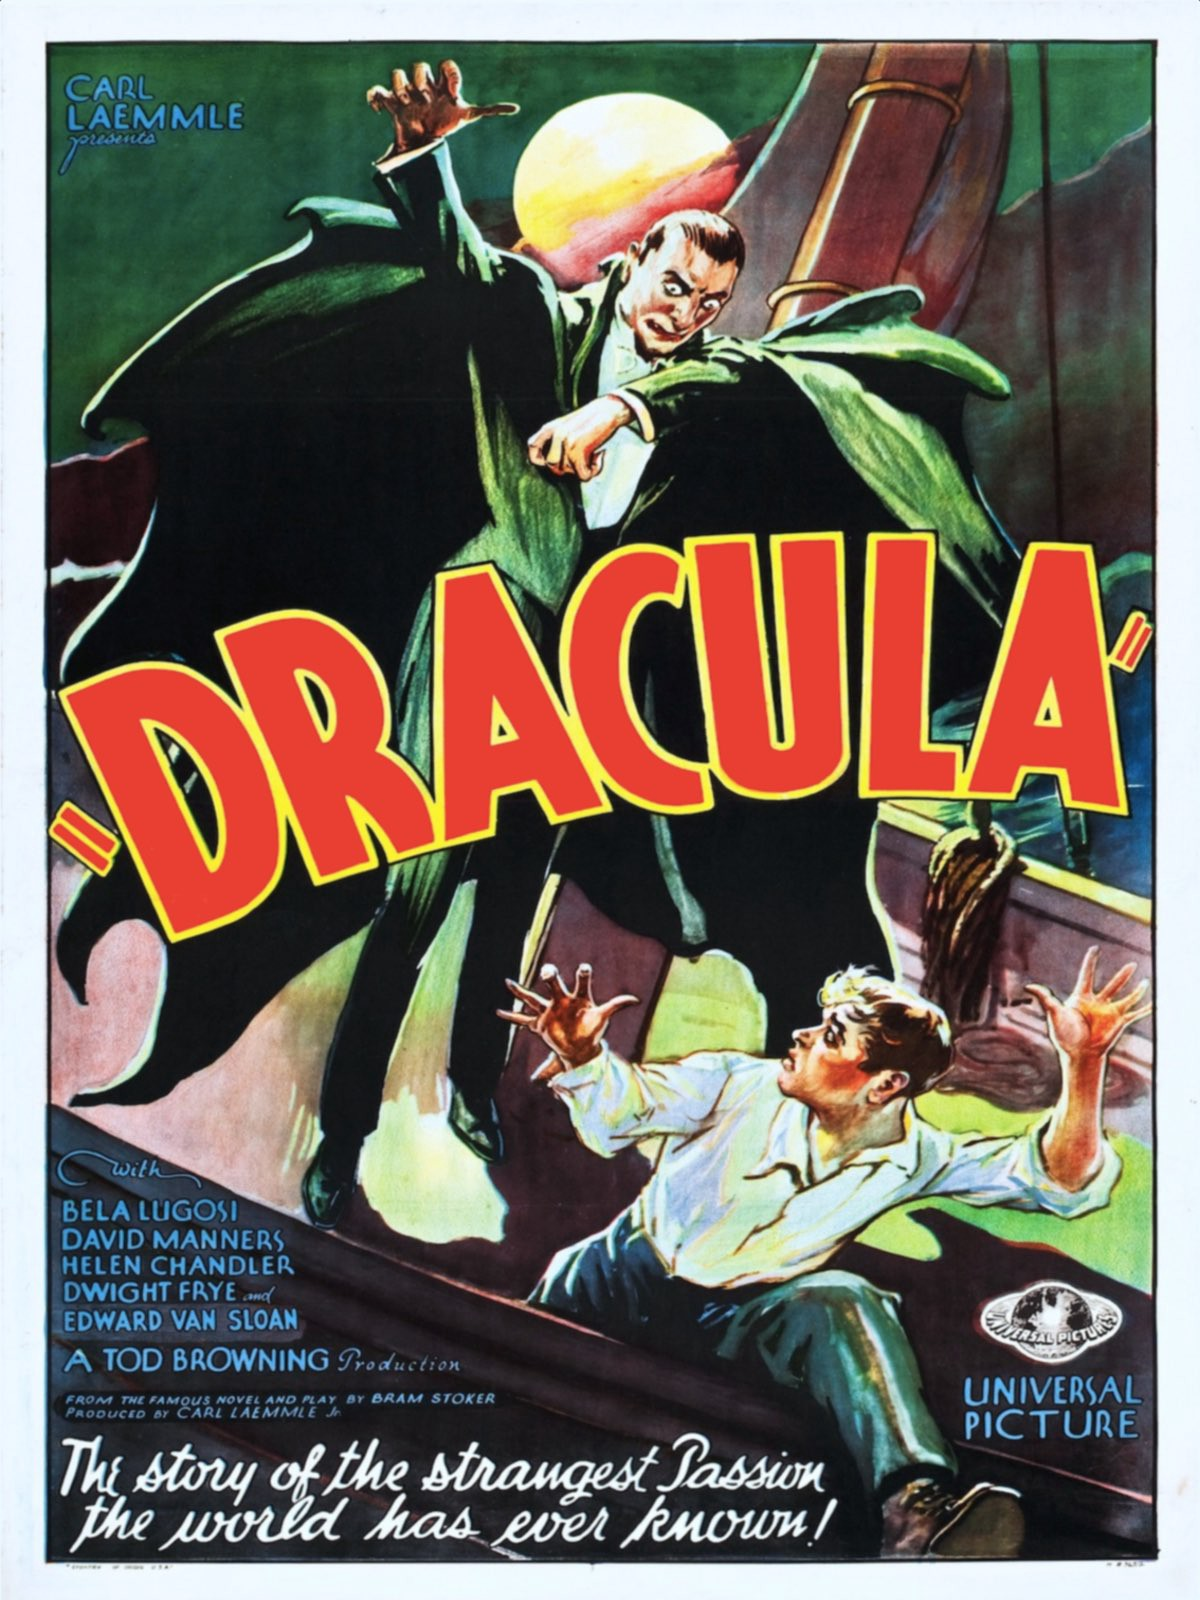 Dracula has had an immense impact on popular culture